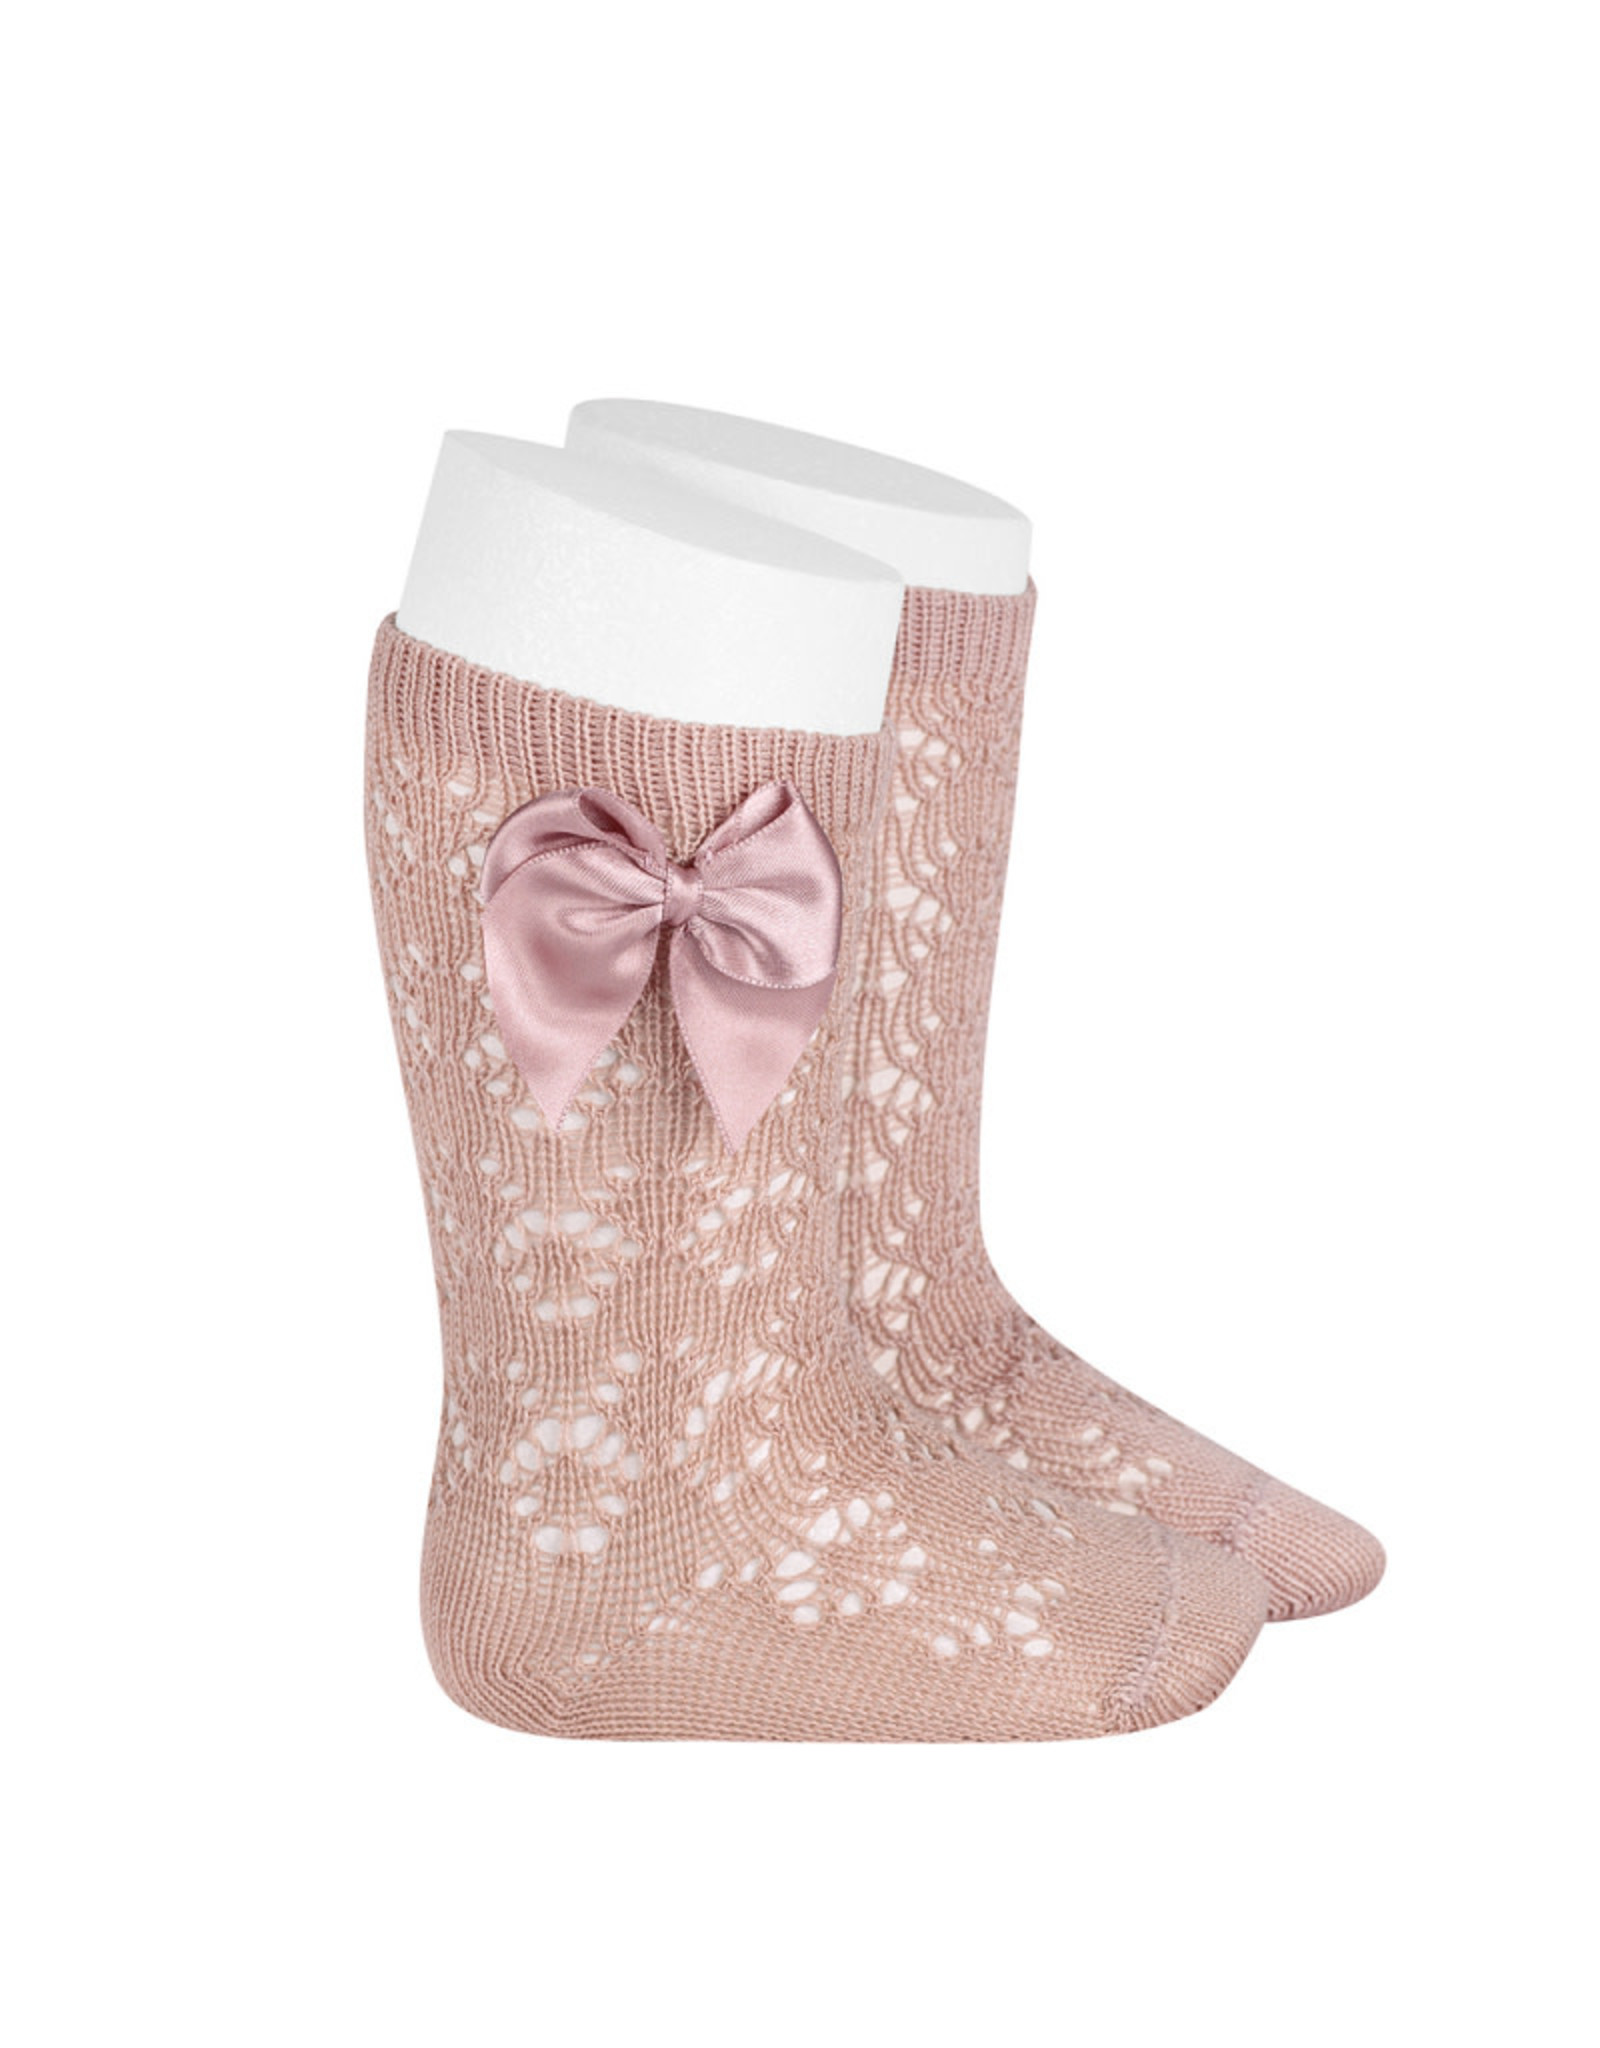 CONDOR Old Rose Geometric socks with Bow